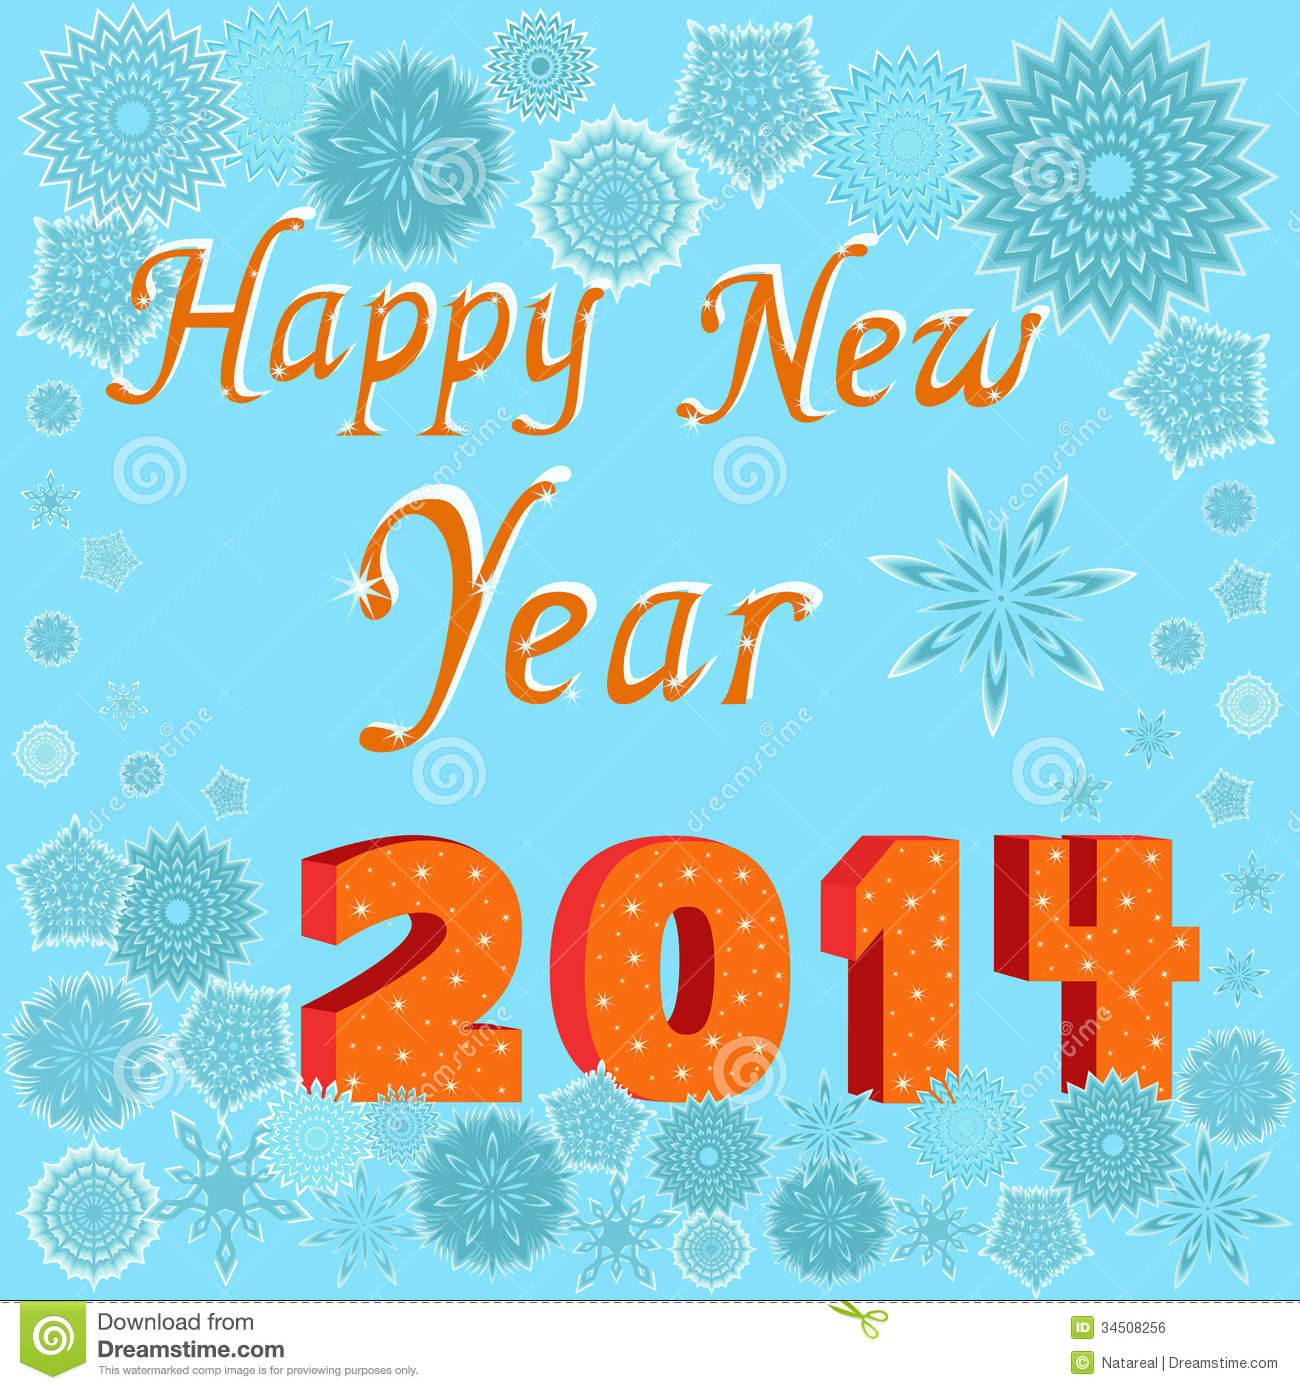 Greeting cards for new year 2014 image collections greeting card happy new year greeting cards drawing merry christmas and happy happy new year greeting cards drawing kristyandbryce Choice Image